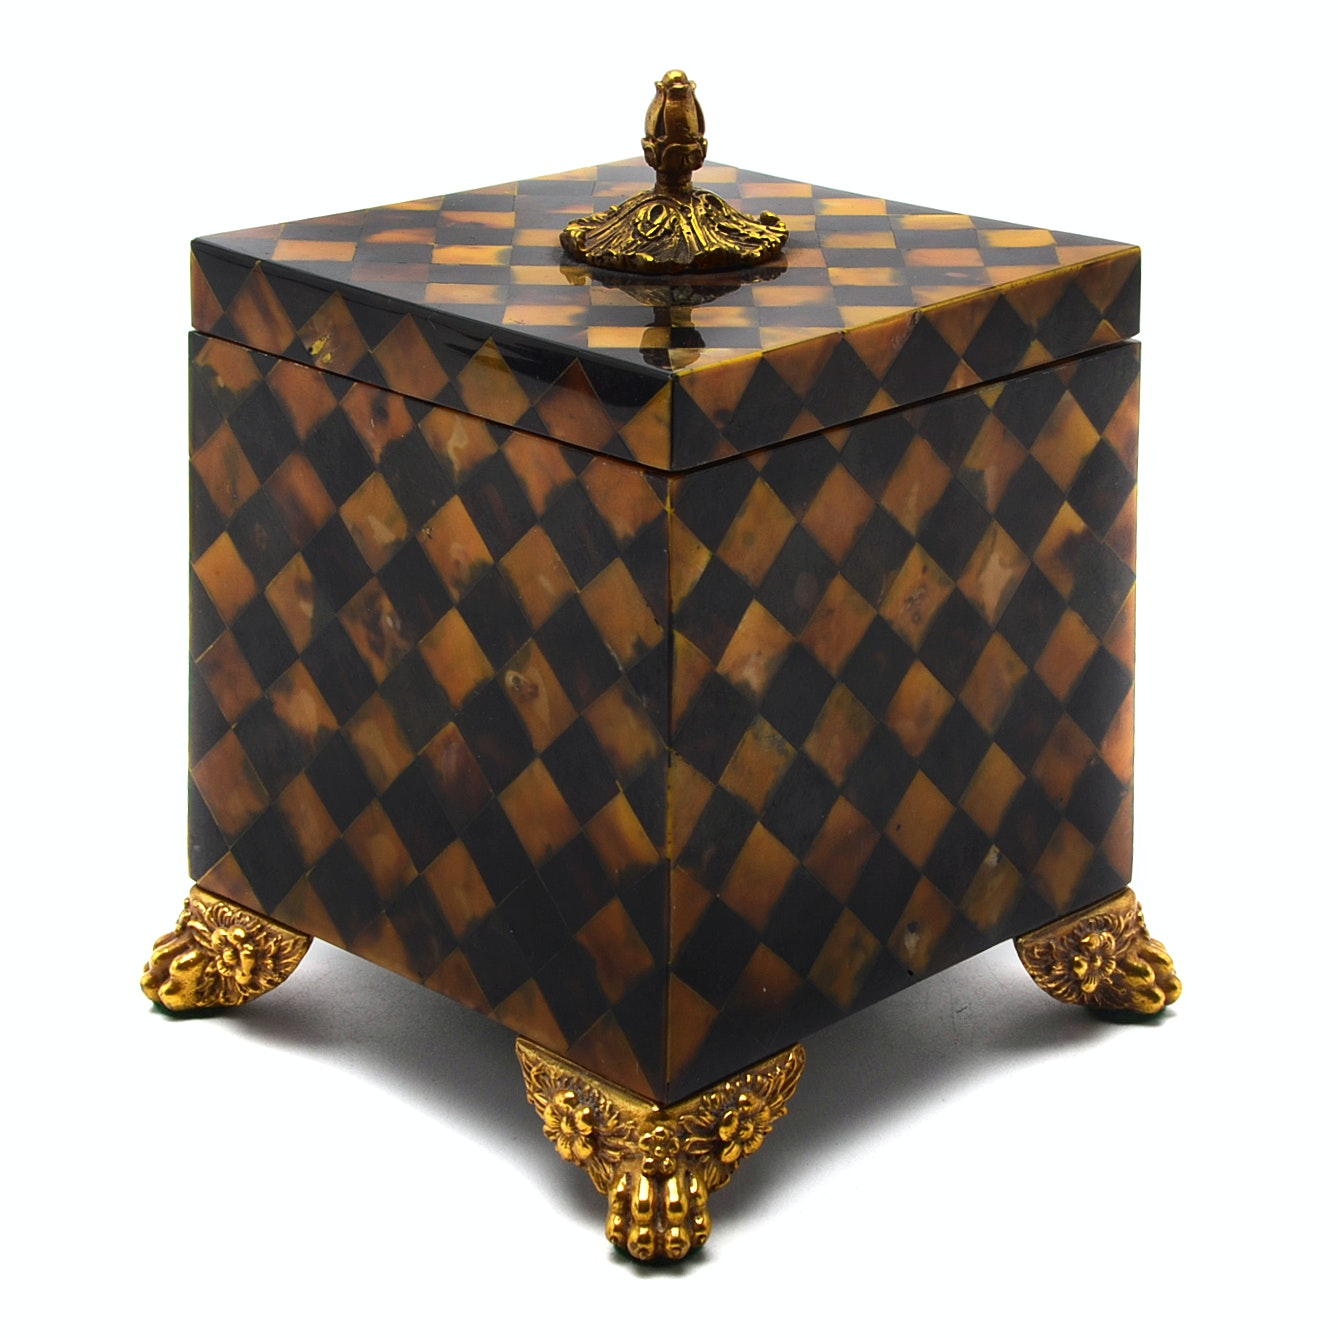 Maitland Smith Footed Trinket Box